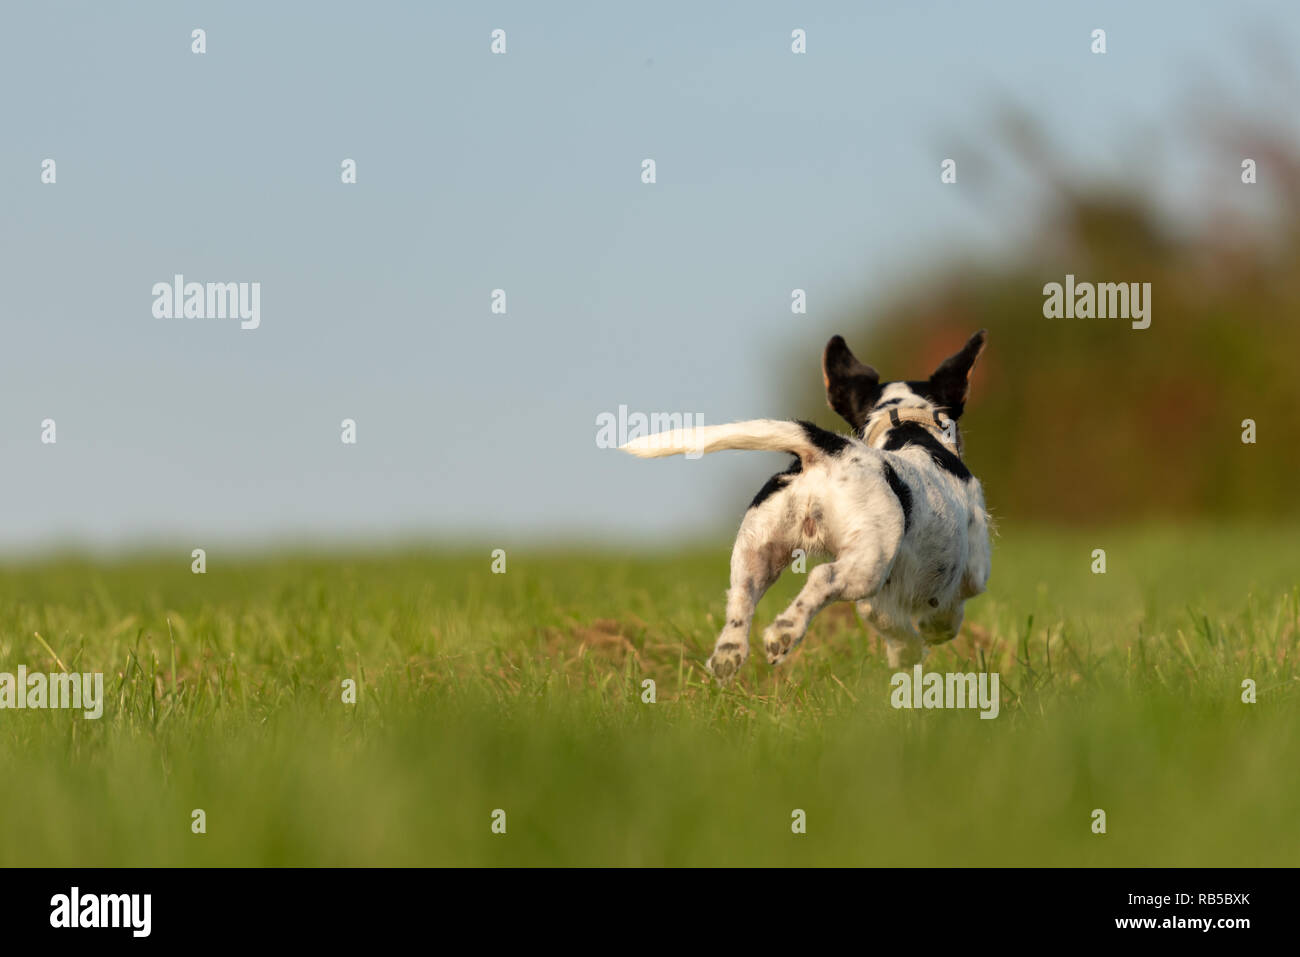 Jack Russell Terrier dog is running away over a green field. Cute runaway dog. - Stock Image